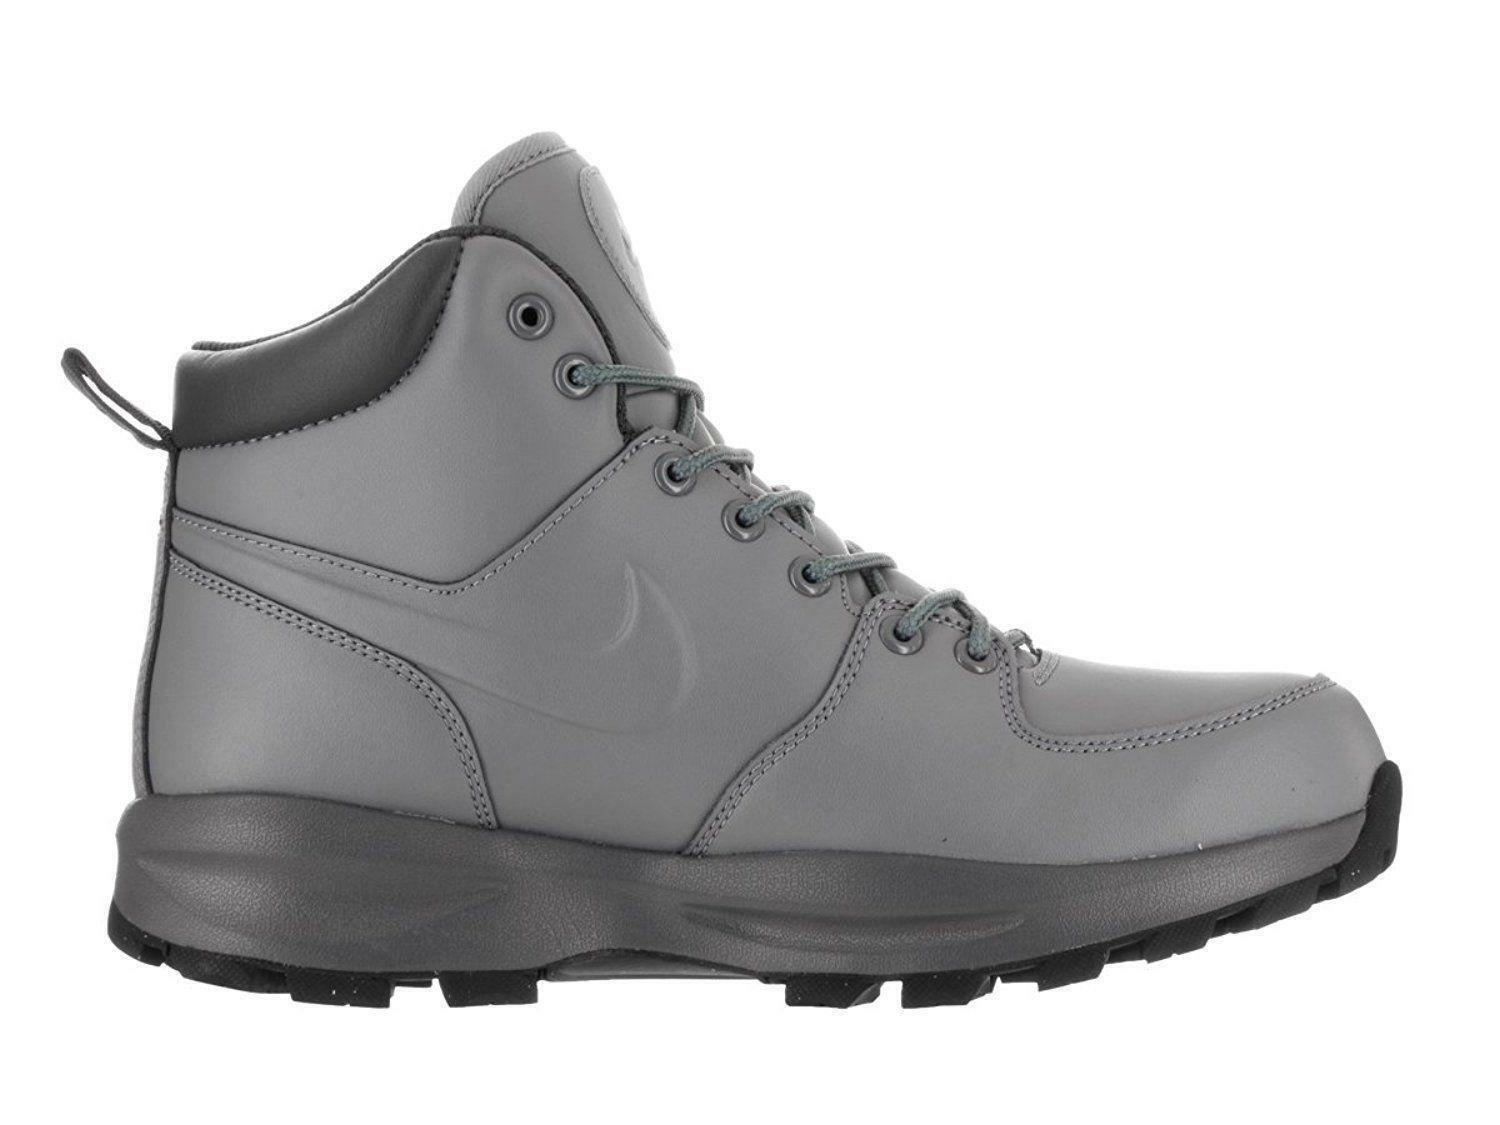 Mens NIKE MANOA Cool Grey Leather Trainers Boots 472780 002